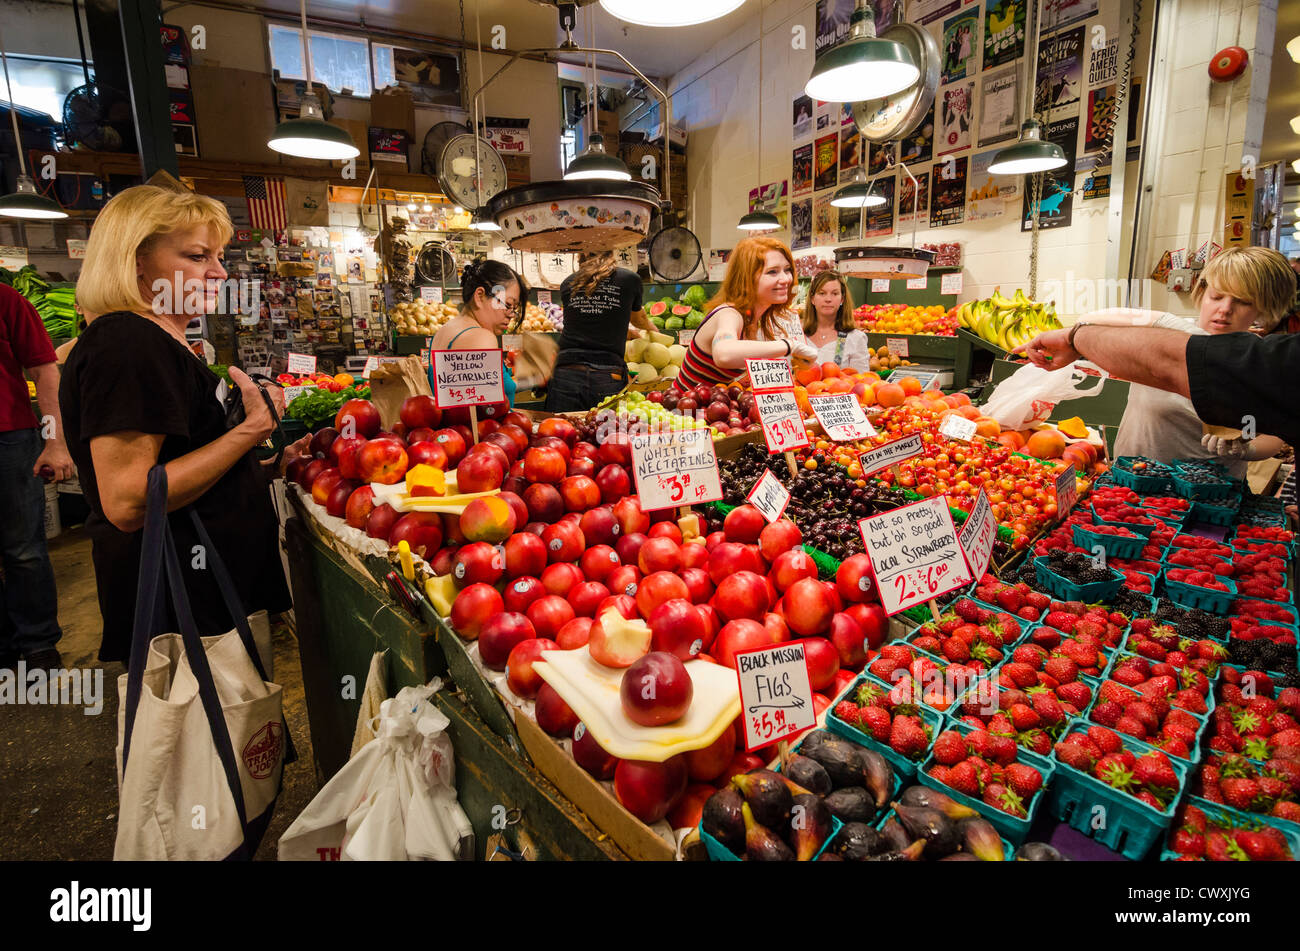 Market stall in Pike Place Market, Seattle, USA - Stock Image